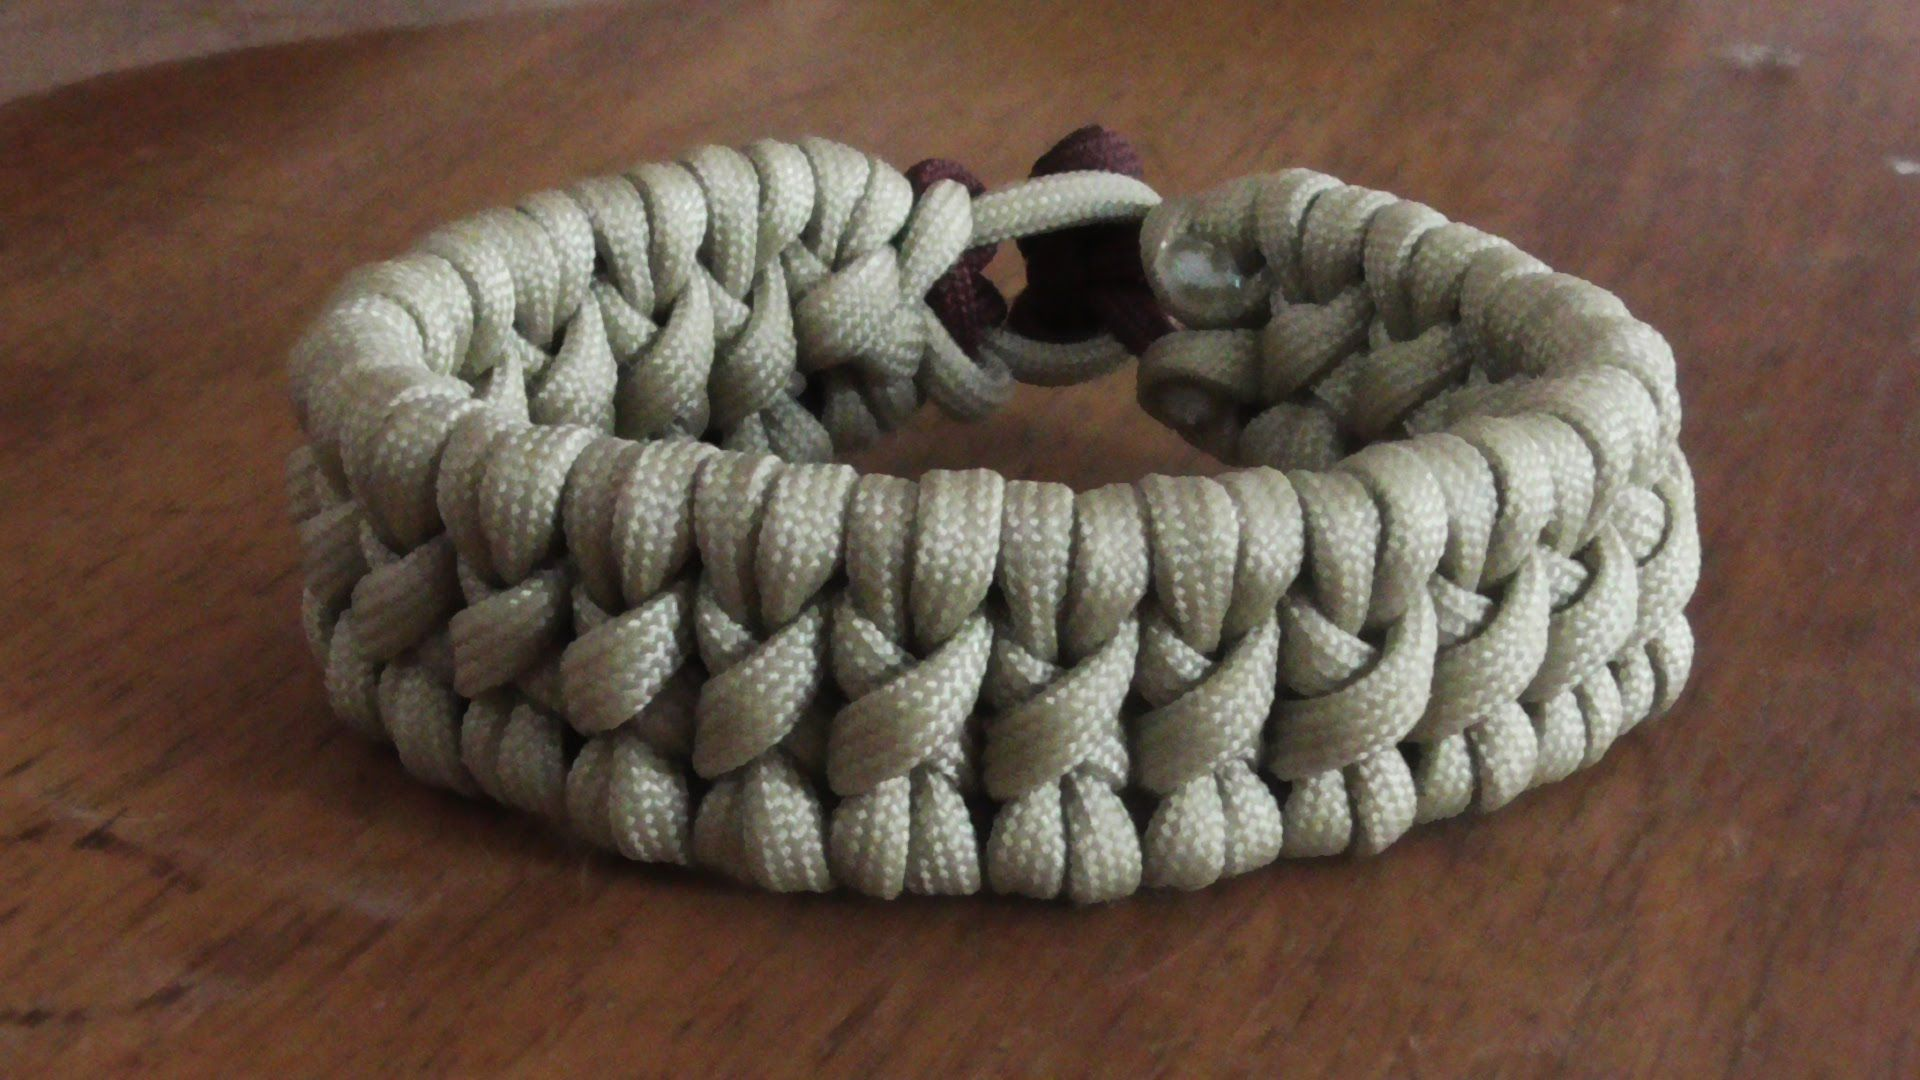 How To Make A Tyrannosaurus Rex Paracord Survival Bracelet Without